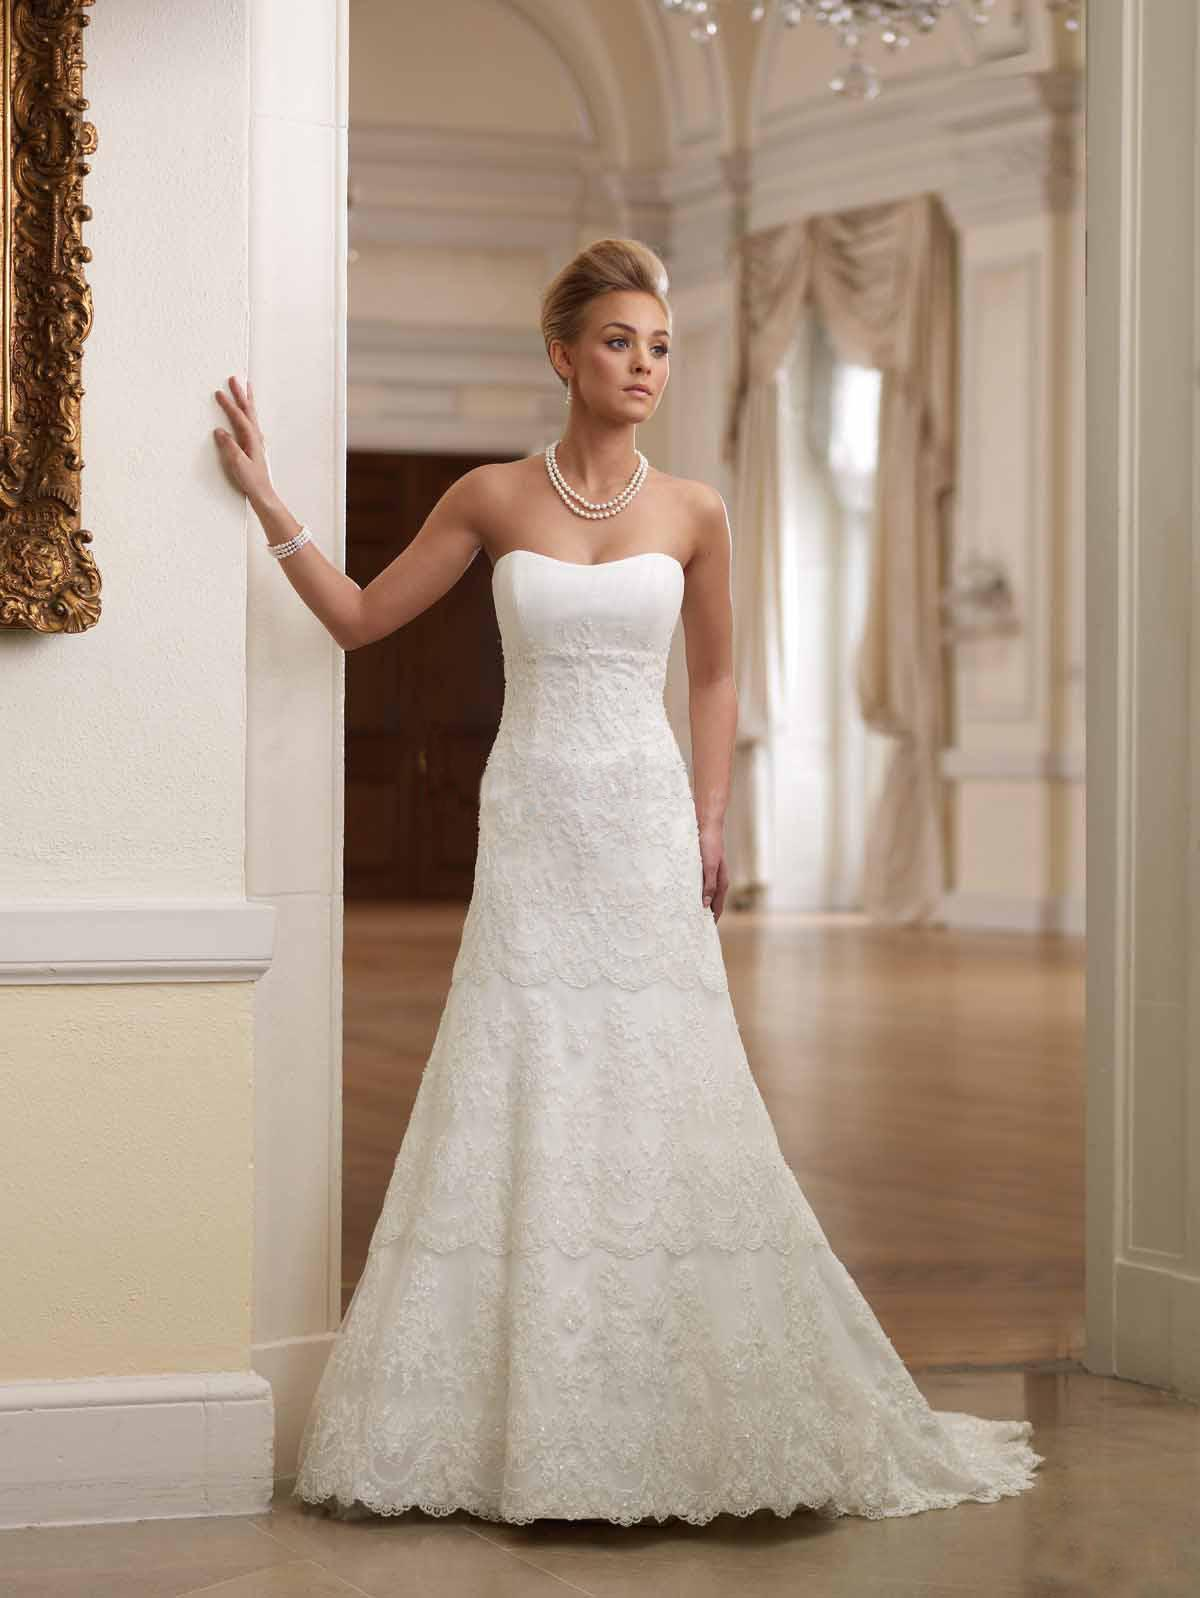 Accessories for strapless wedding gown wedding ideas pure 2017 plus size wedding dresses strapless a line ombrellifo Choice Image